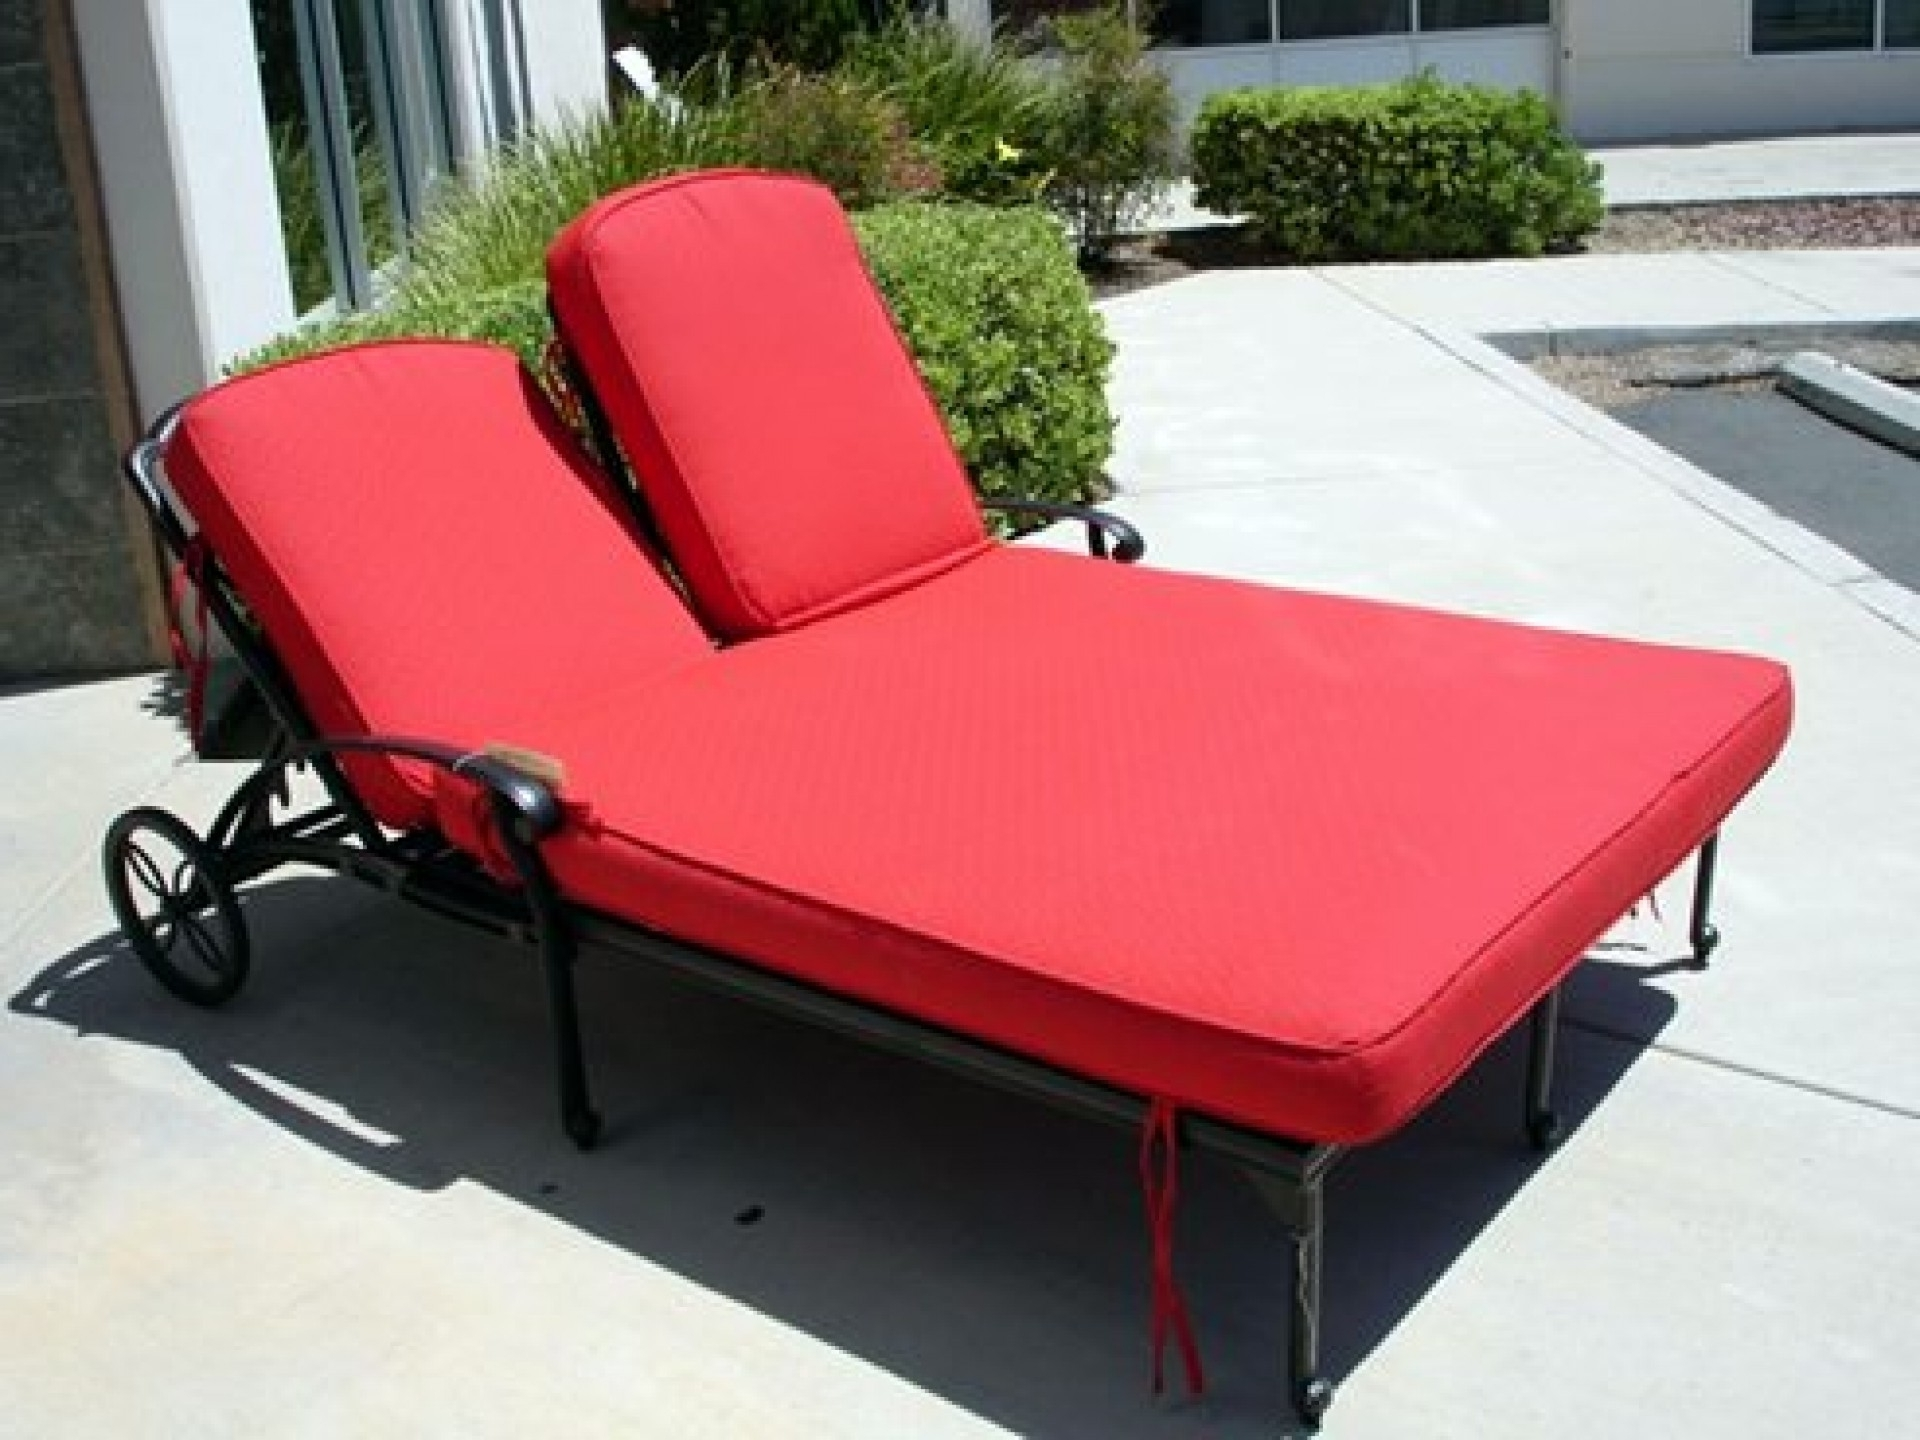 2017 Convertible Chair : For Outside Furniture Chaise Lounge Chair Pads In  Outdoor Cushions For Chaise